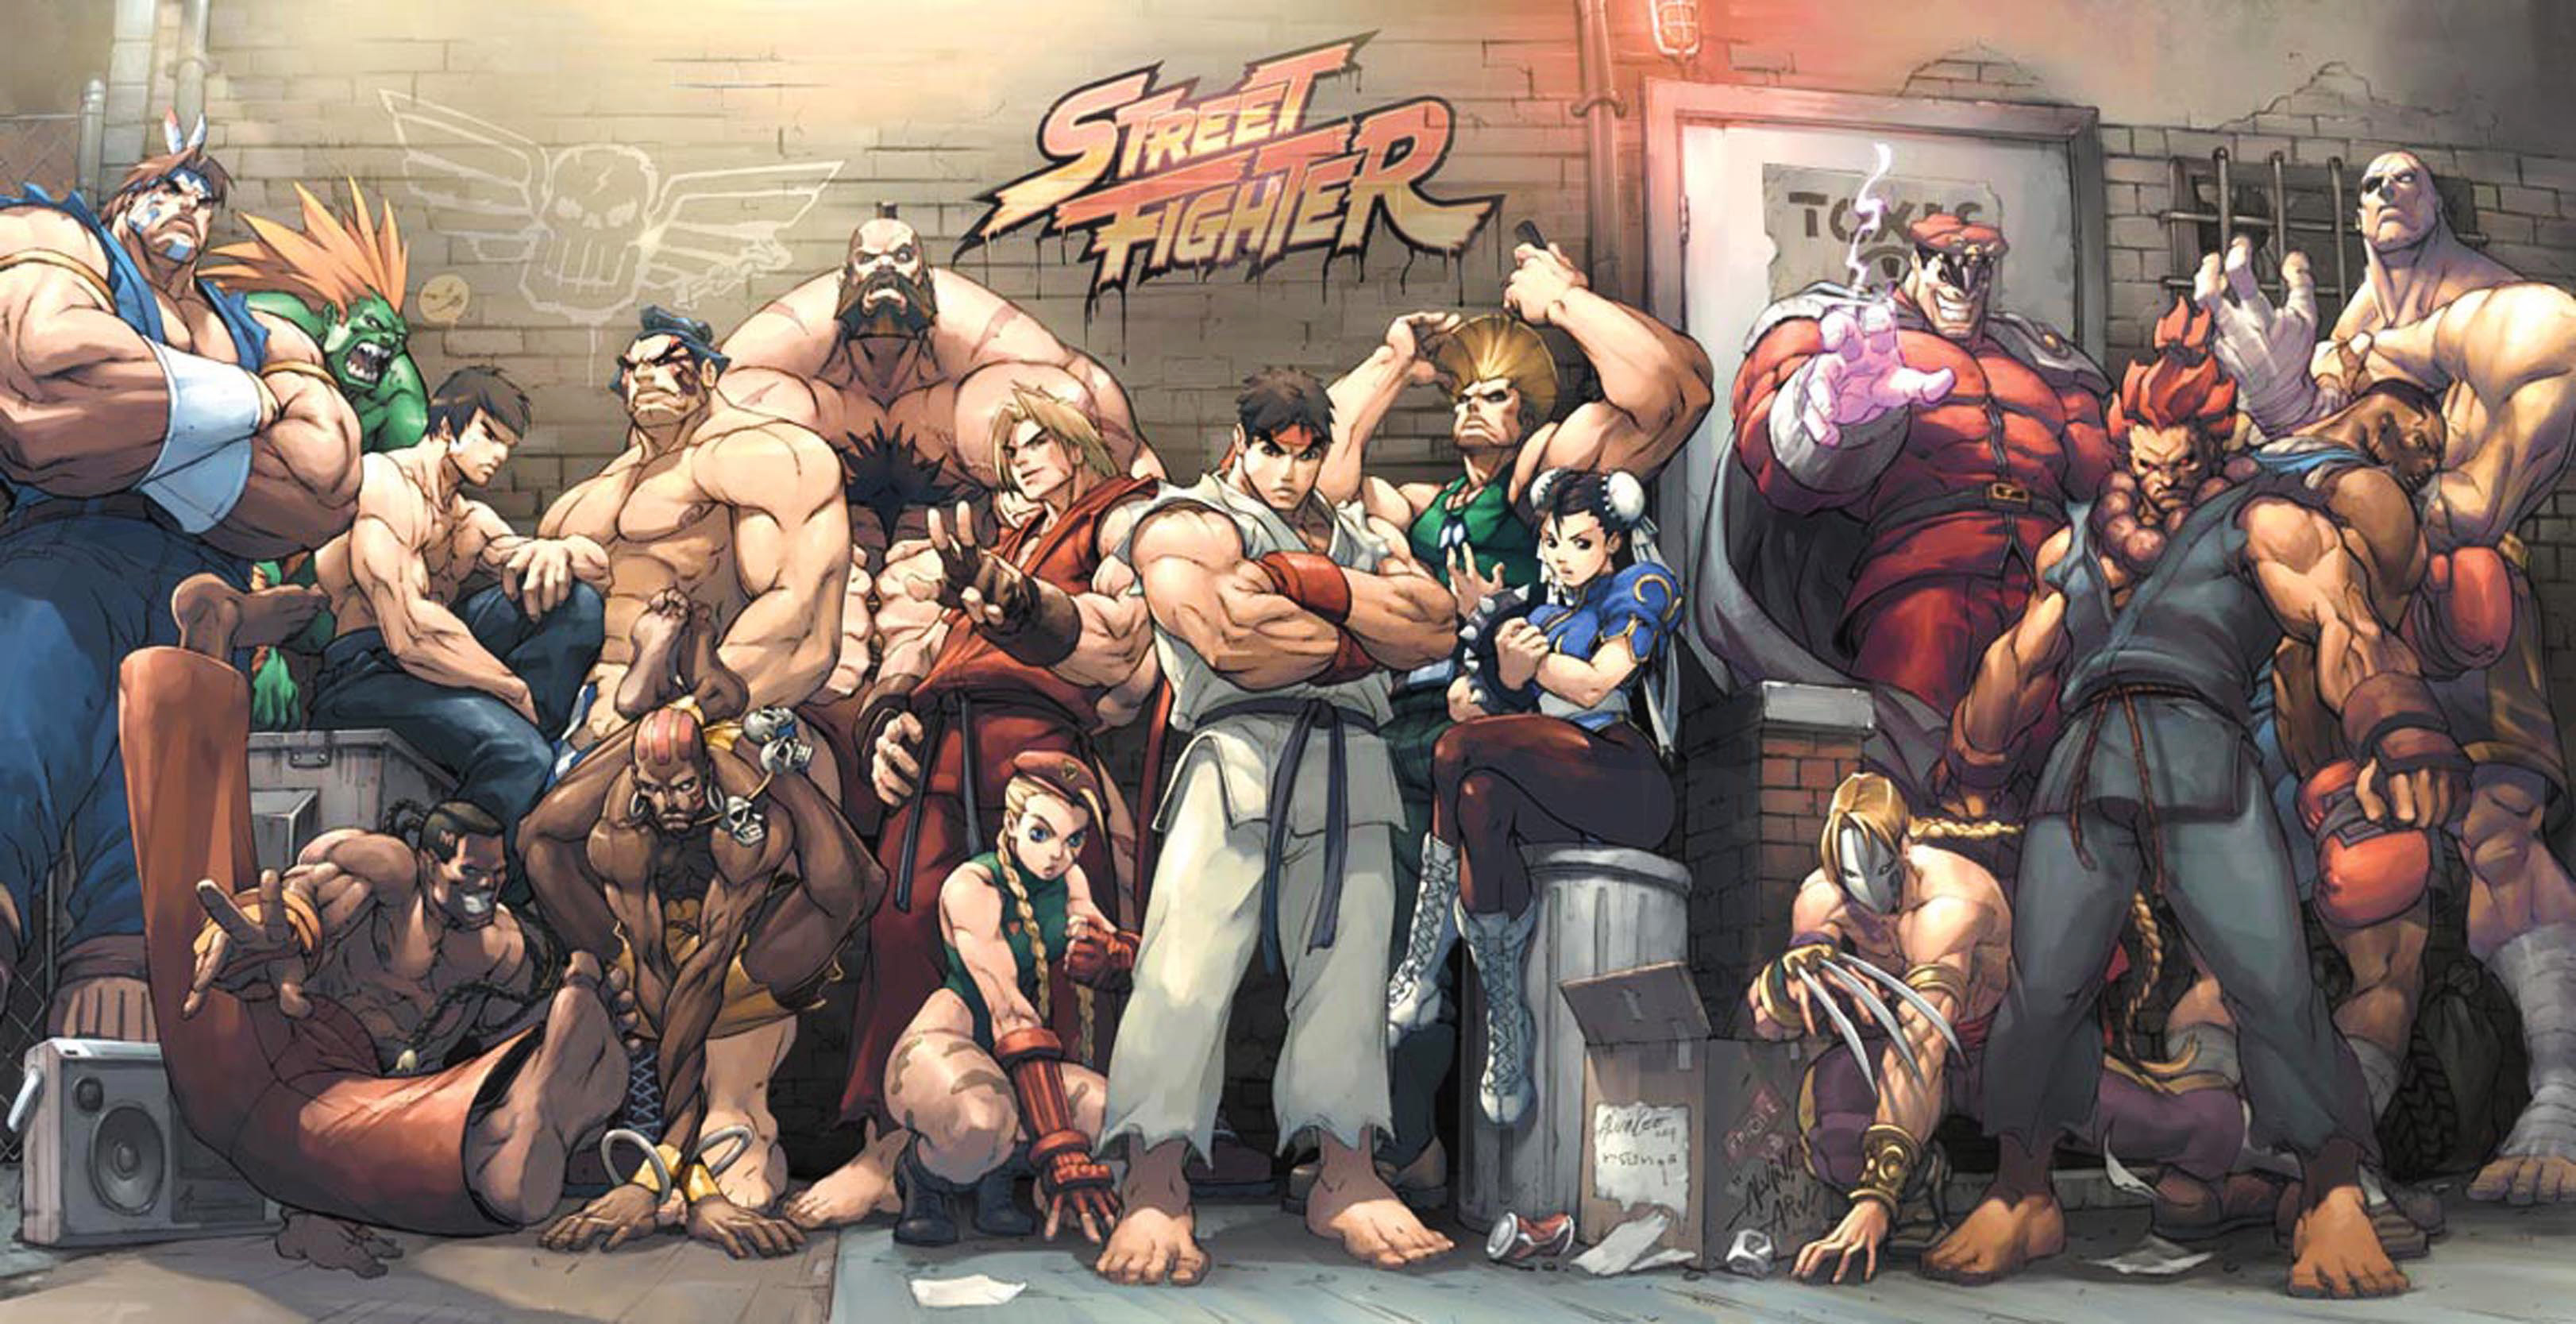 street_fighter_by_zxchriszx-d3ch7d7